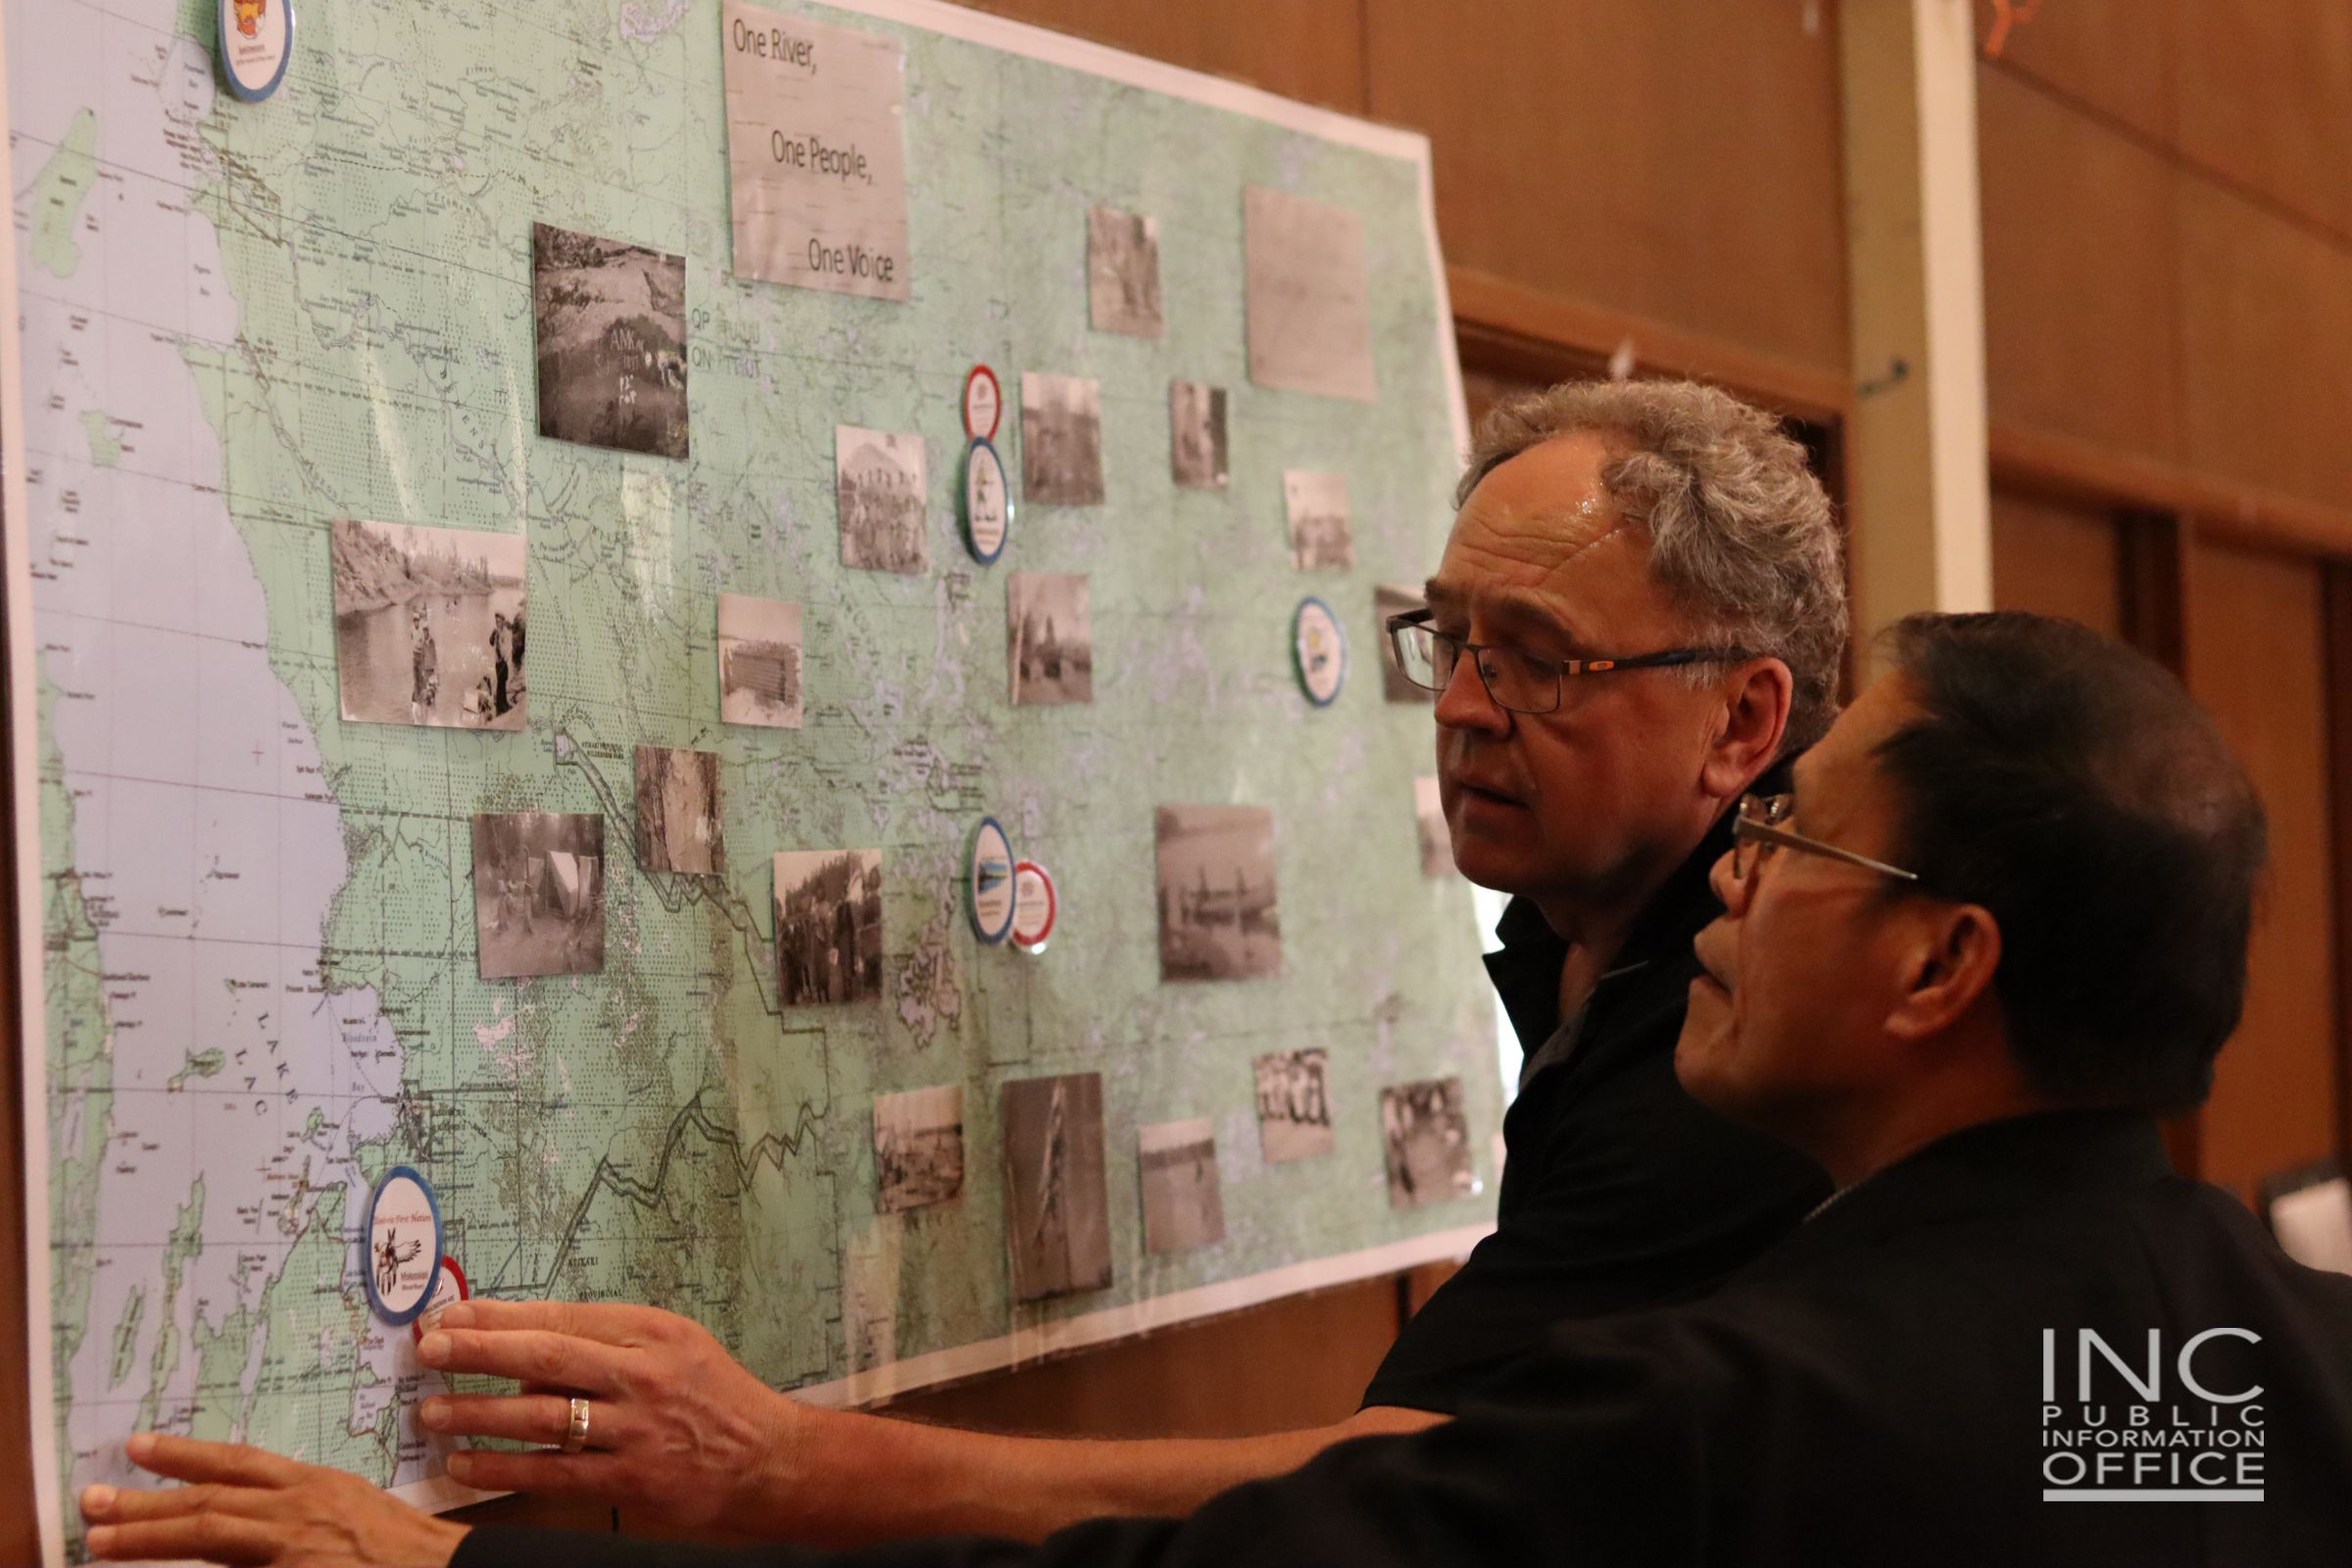 Mr_Gerald_Neufeld_gives_a_brief_history_of_Indigenous_Peoples_to